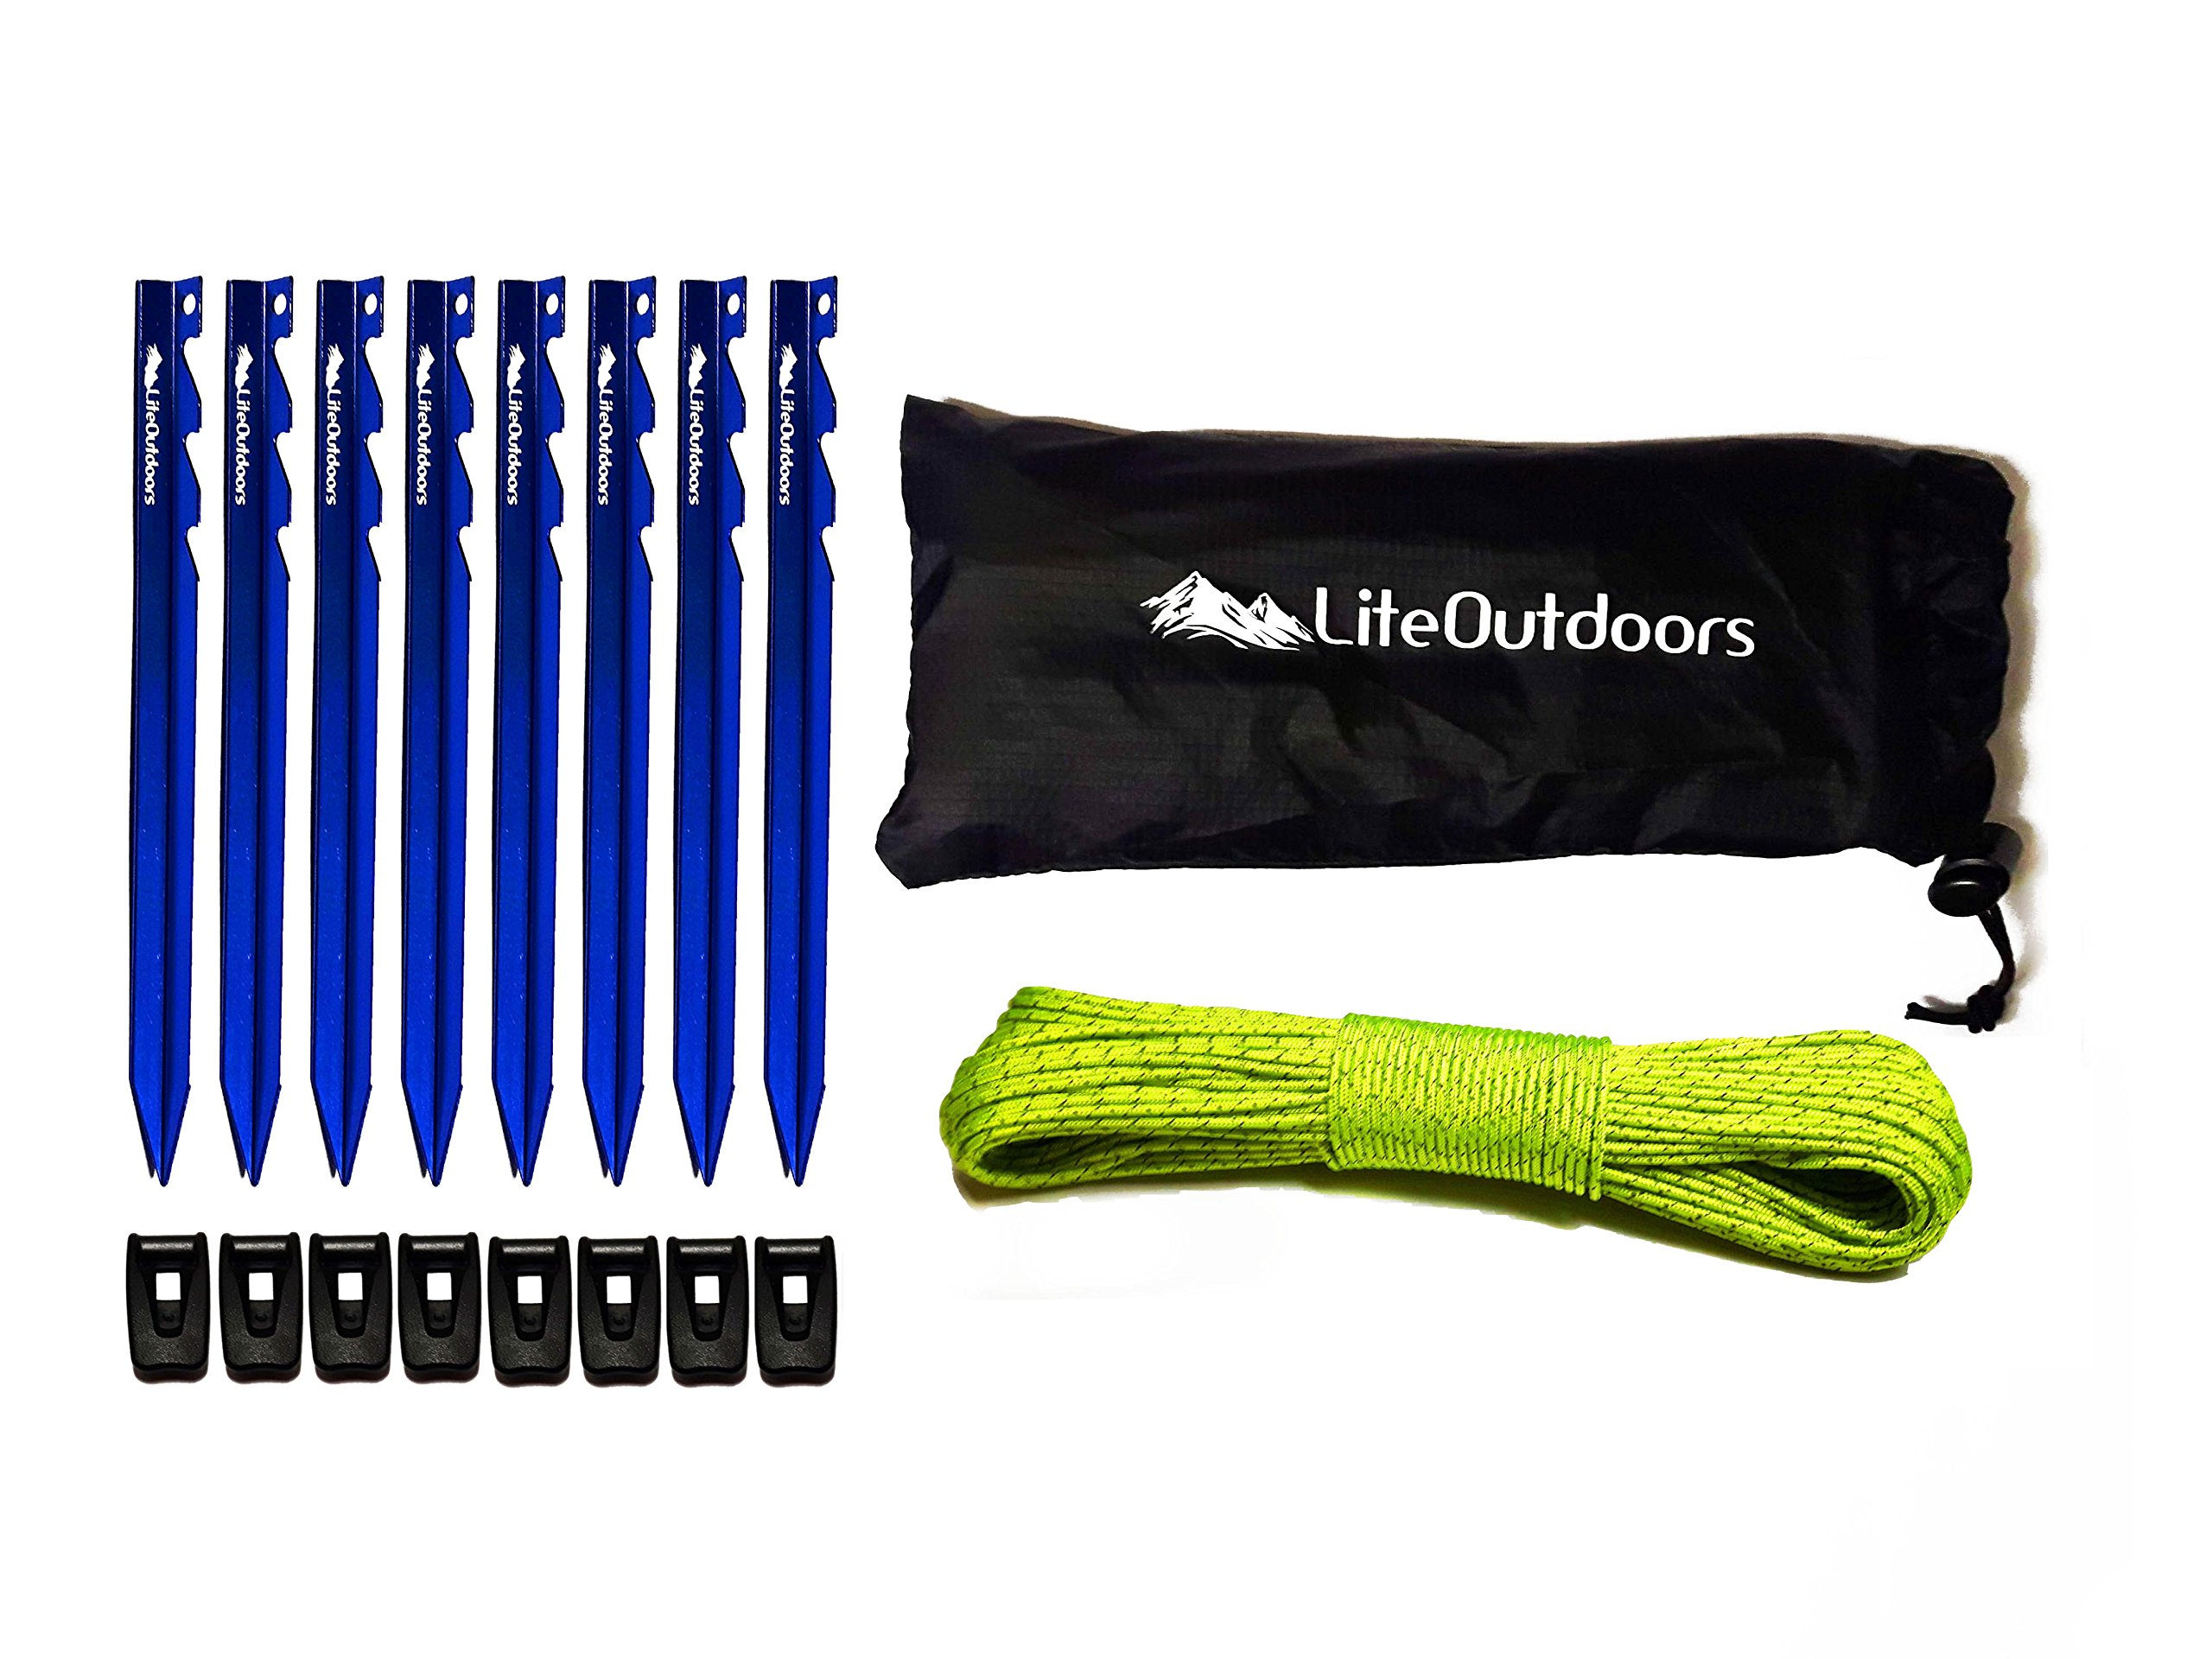 LiteOutdoors Ultralight Tent Stake Kit - 8 Aluminum Tent Pegs, 60' Reflective Guy Line, 8 Cord Tensioners - For Backpacking, Hiking, Camping by LiteOutdoors